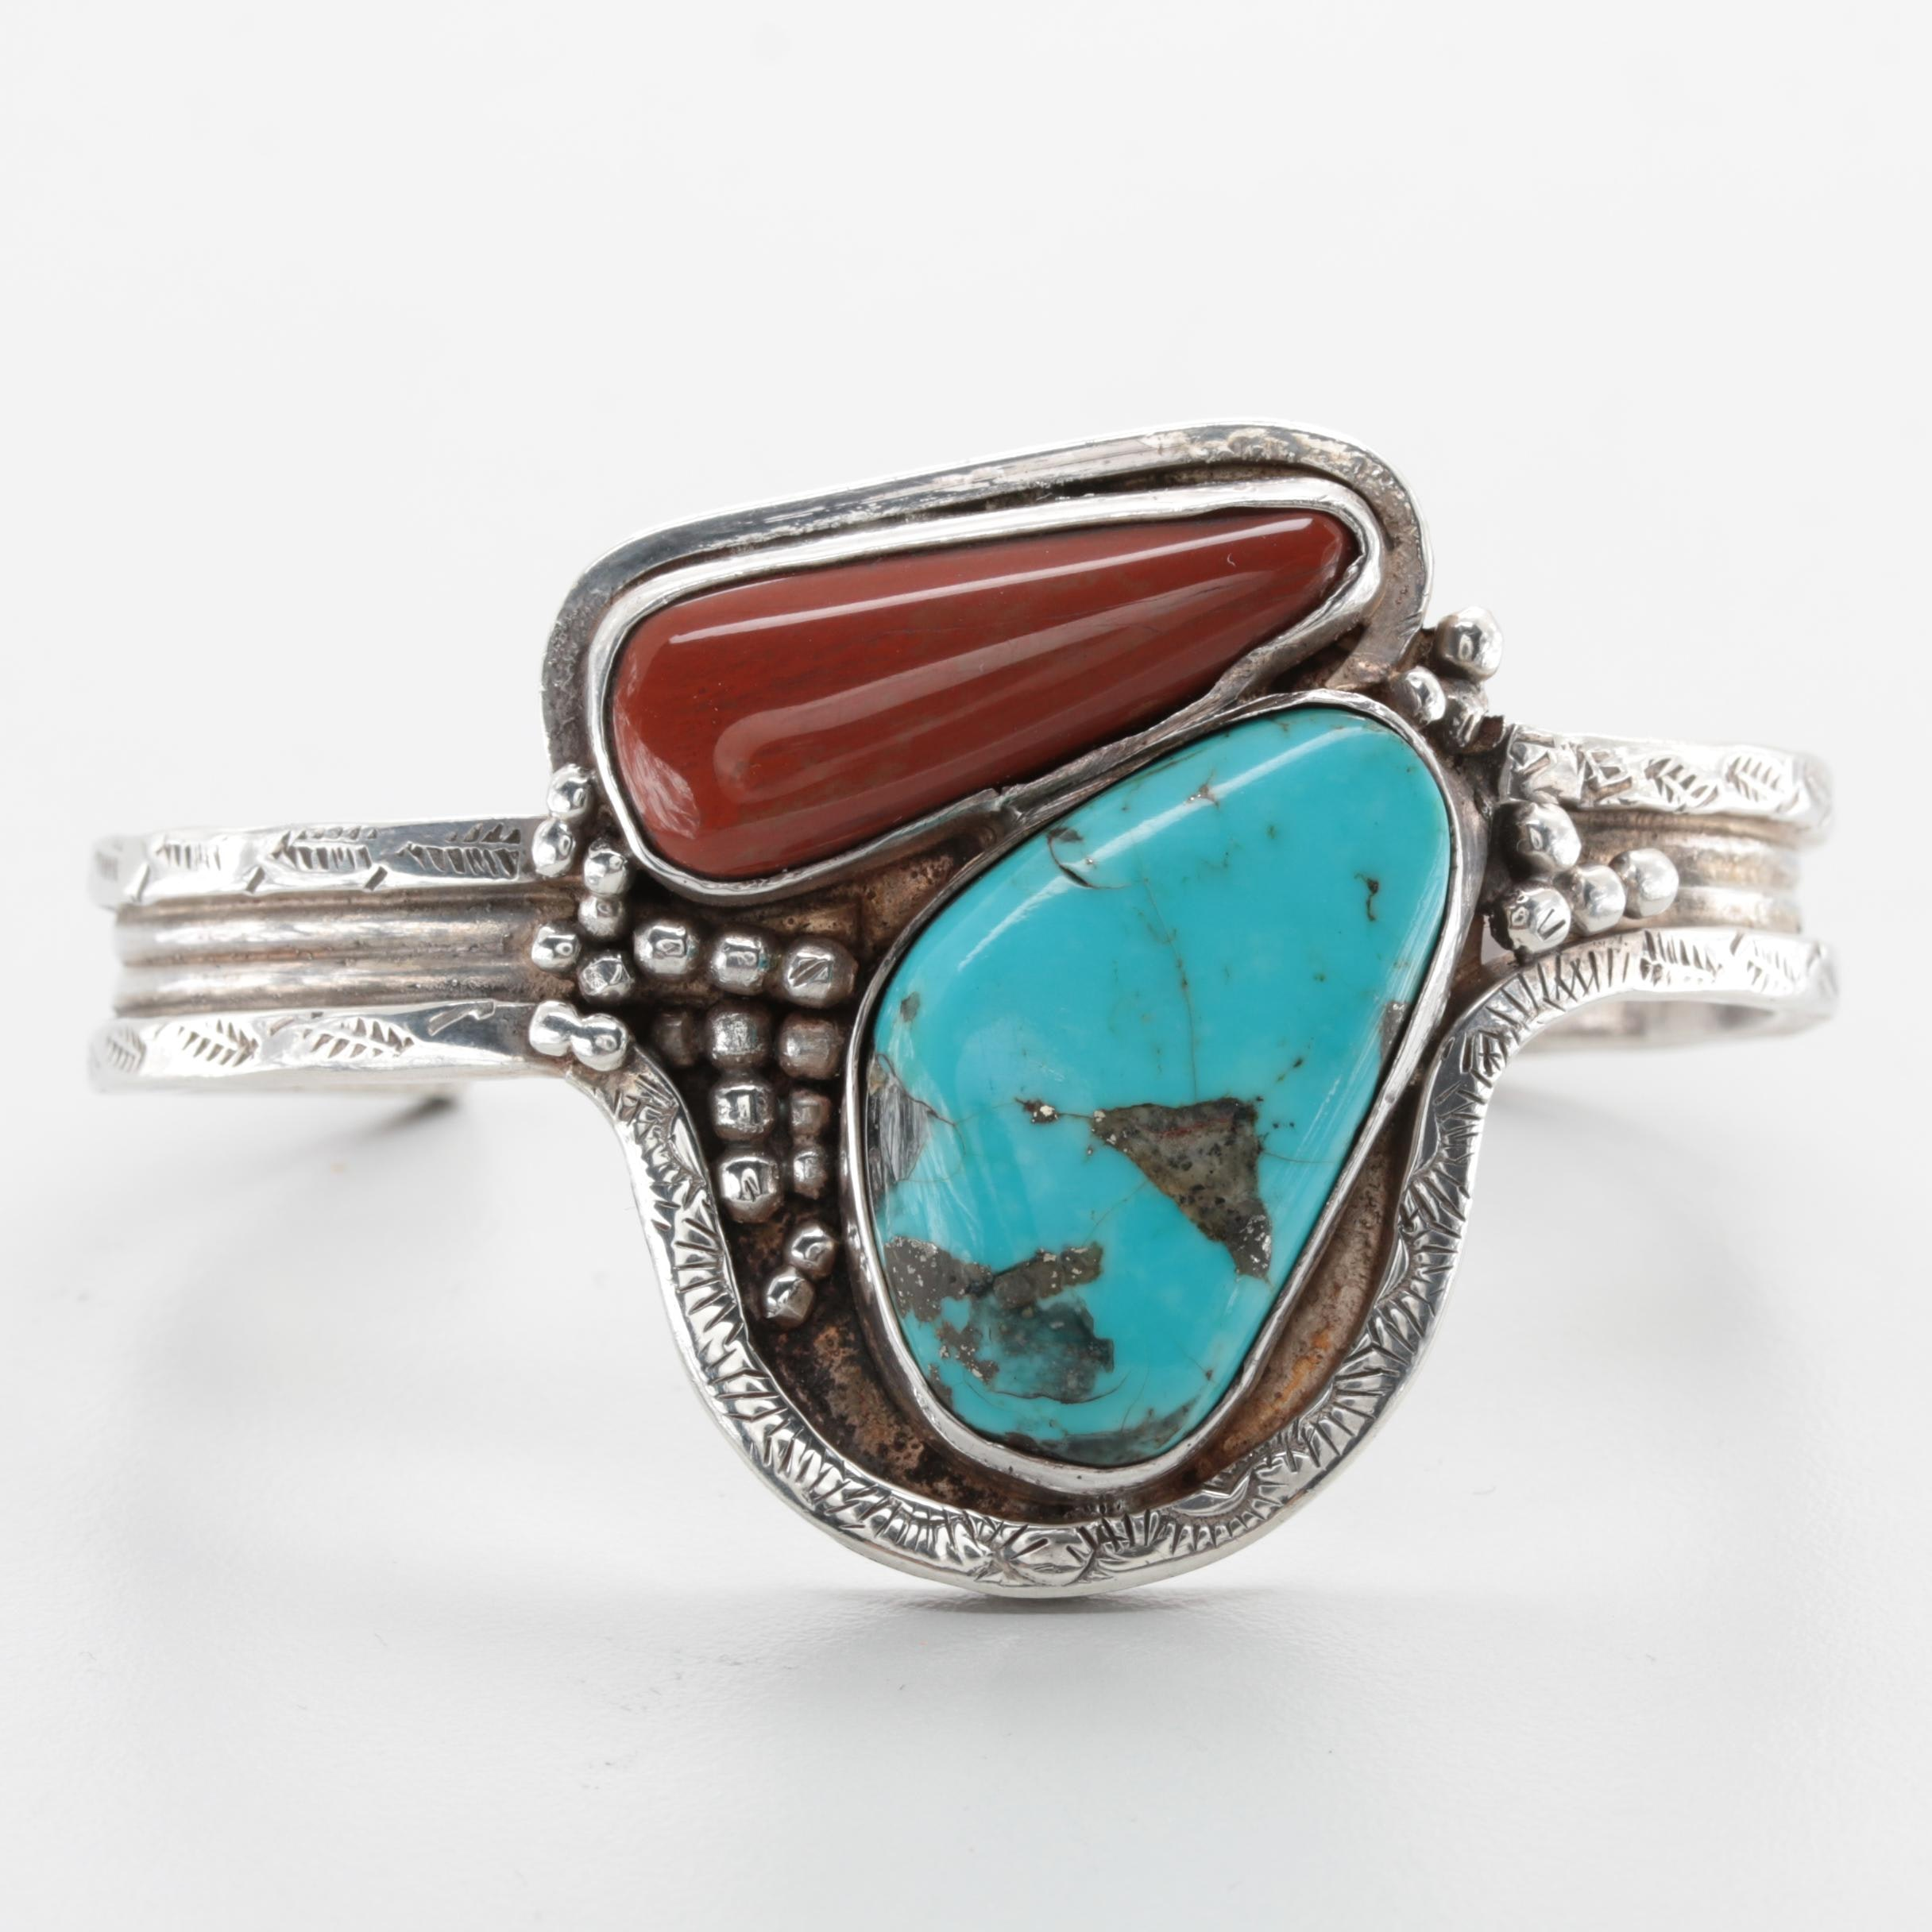 Southwestern Style Sterling Silver Turquoise and Agate Cuff Bracelet